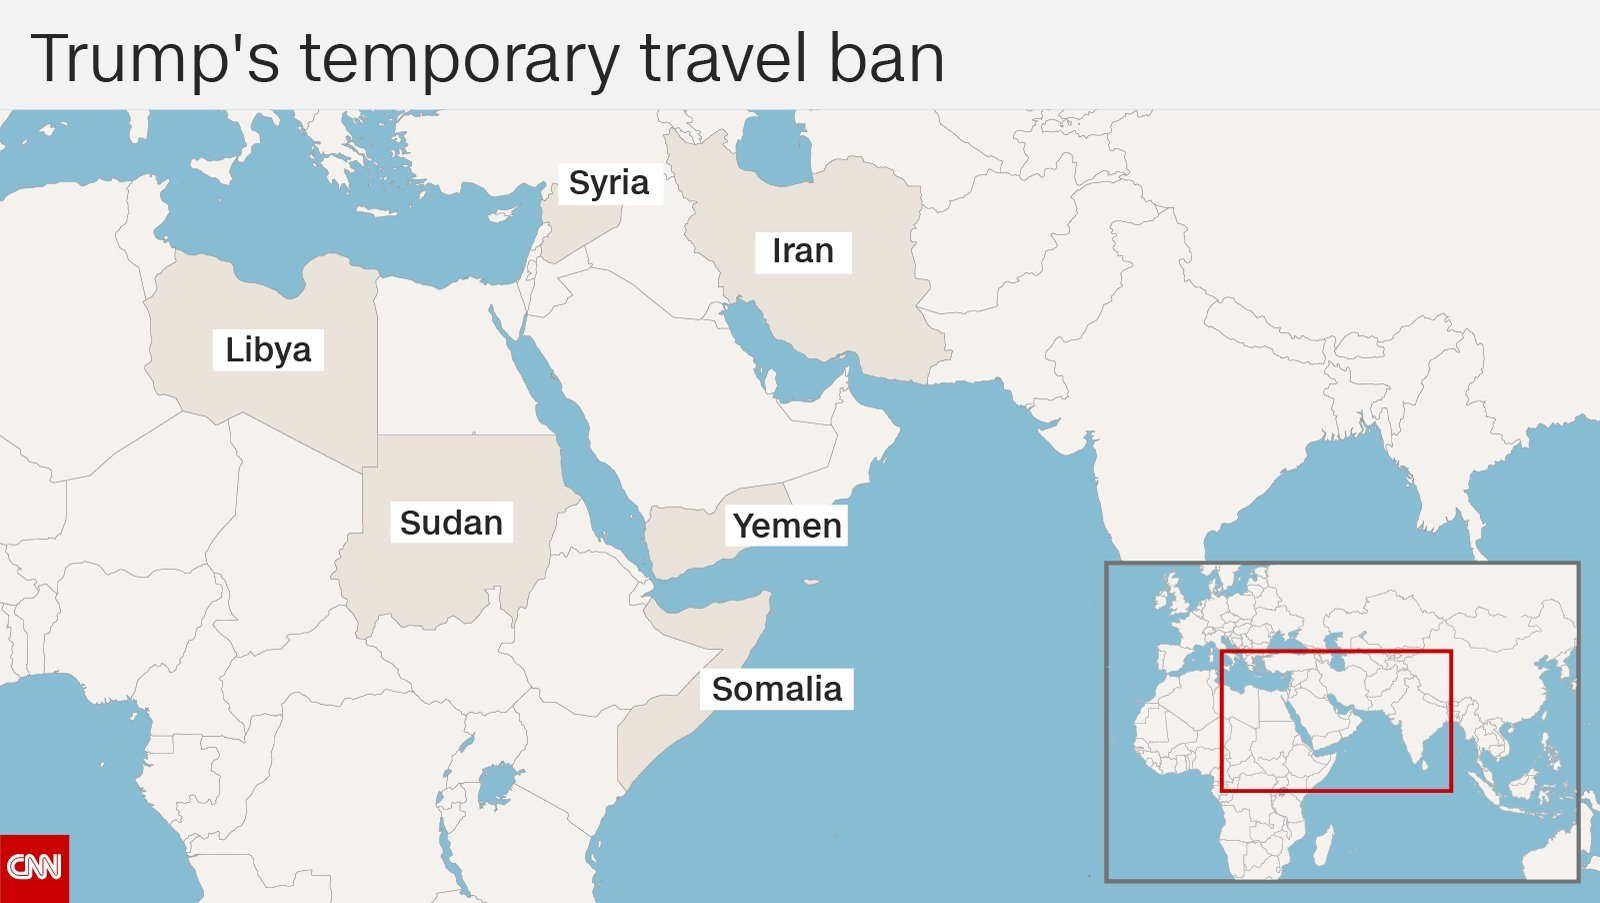 These countries would be affected by the proposed travel ban, which is under review by the U.S. Supreme Court (CNN)